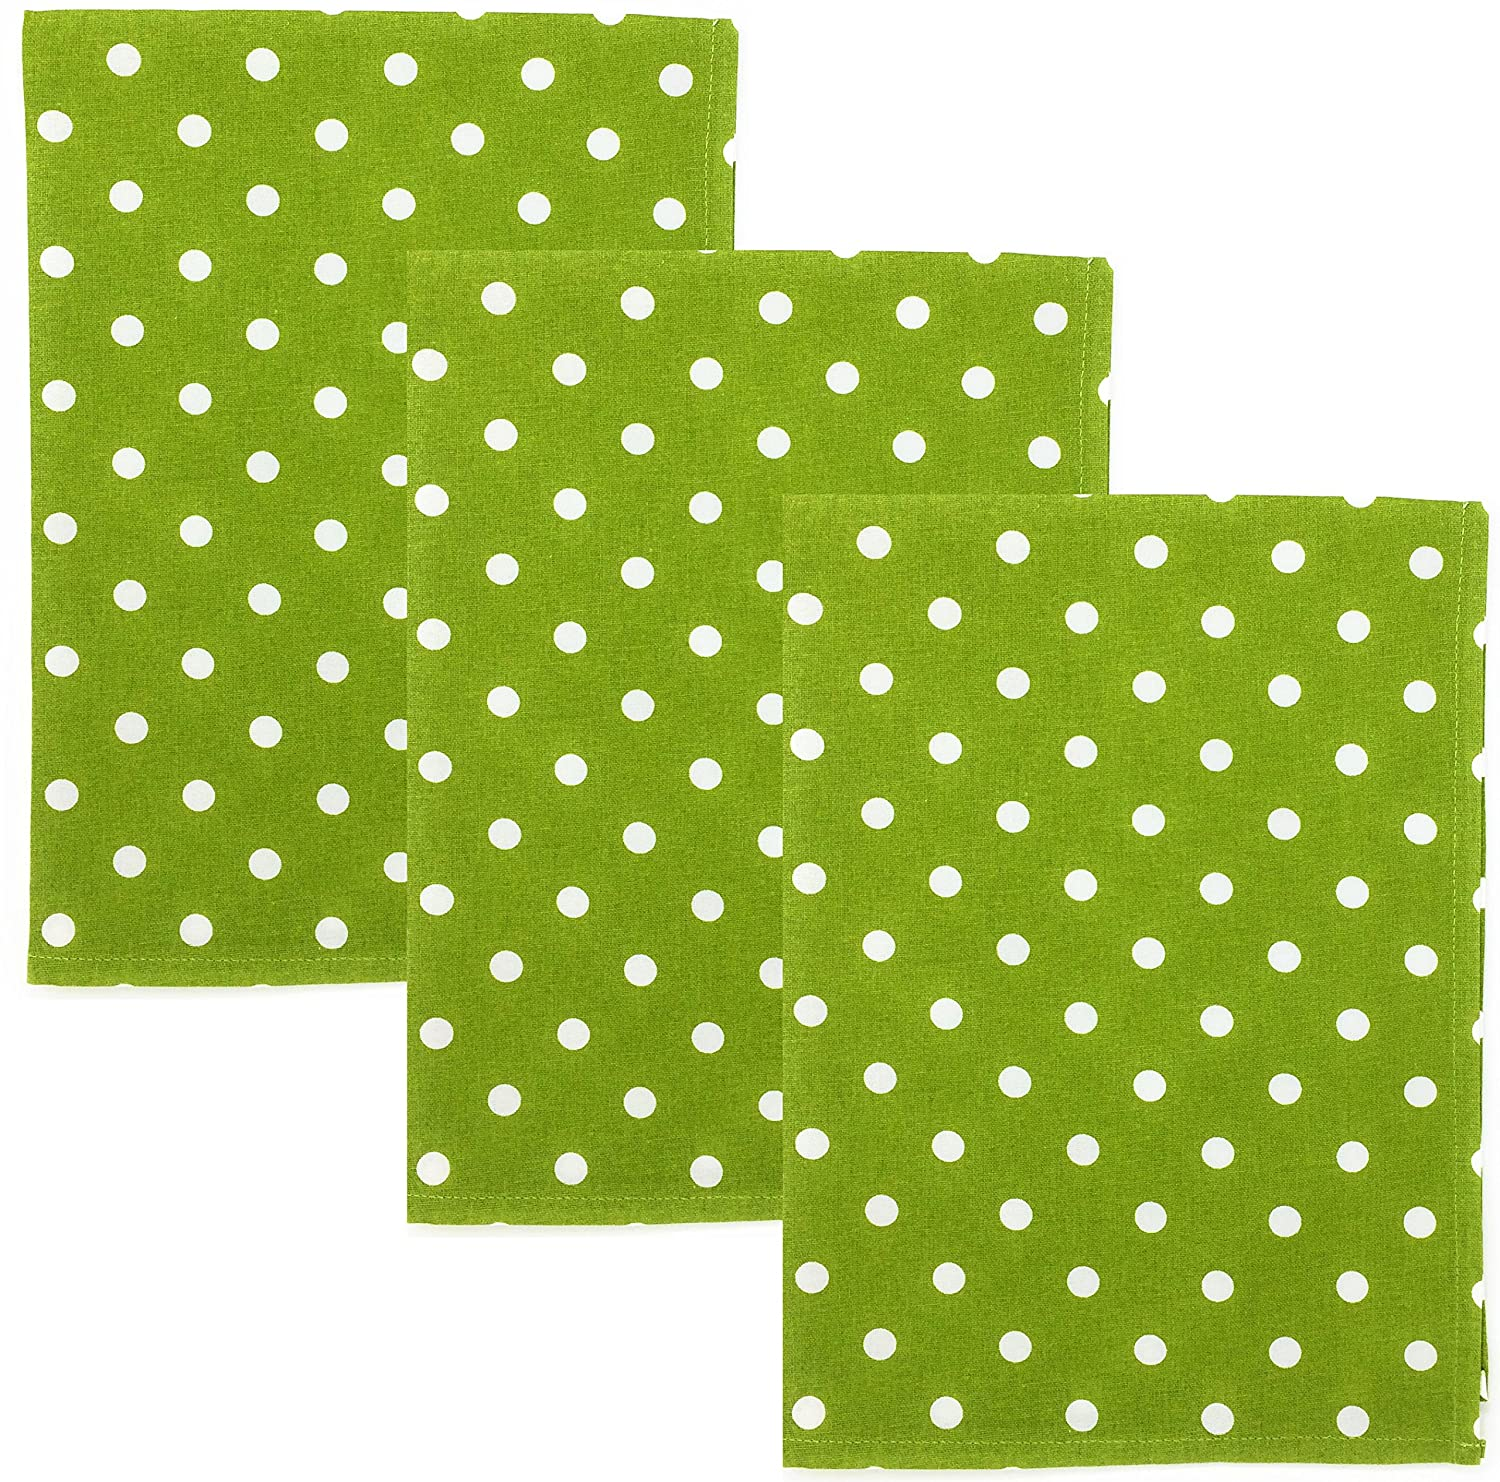 Dunroven House Polka Dot 100% Cotton Kitchen Towels, Set of 3 (Lime Green)